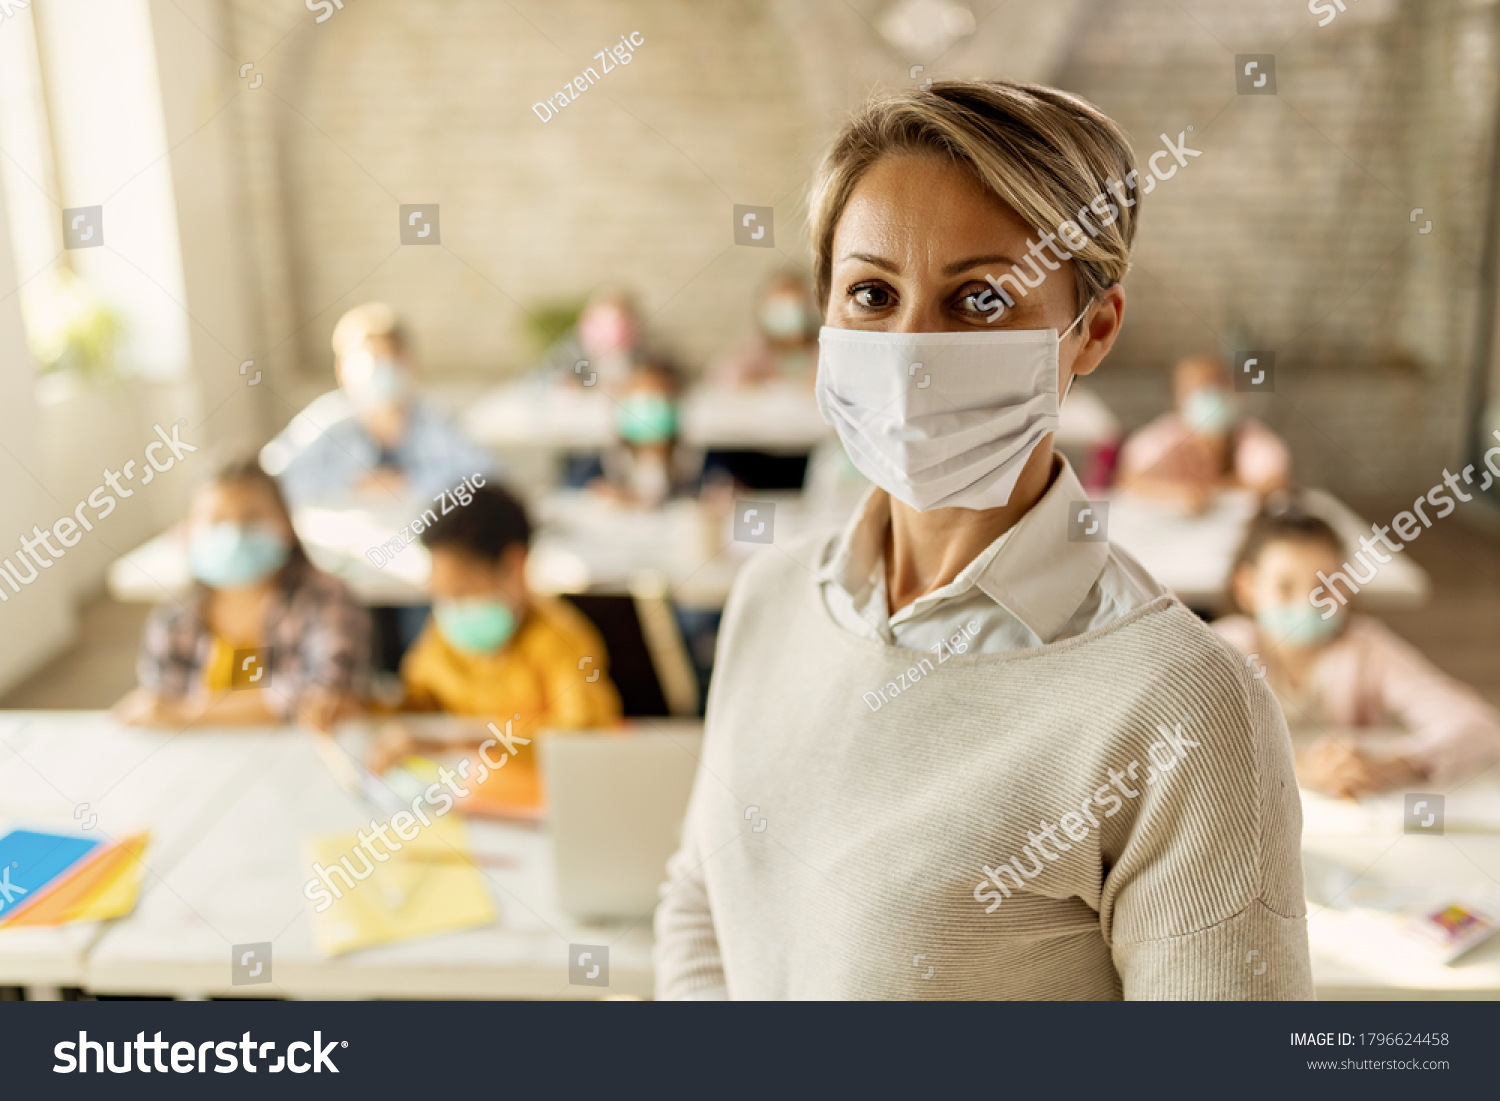 Female teacher wearing a face mask while teaching children at elementary school and looking at camera.  #1796624458